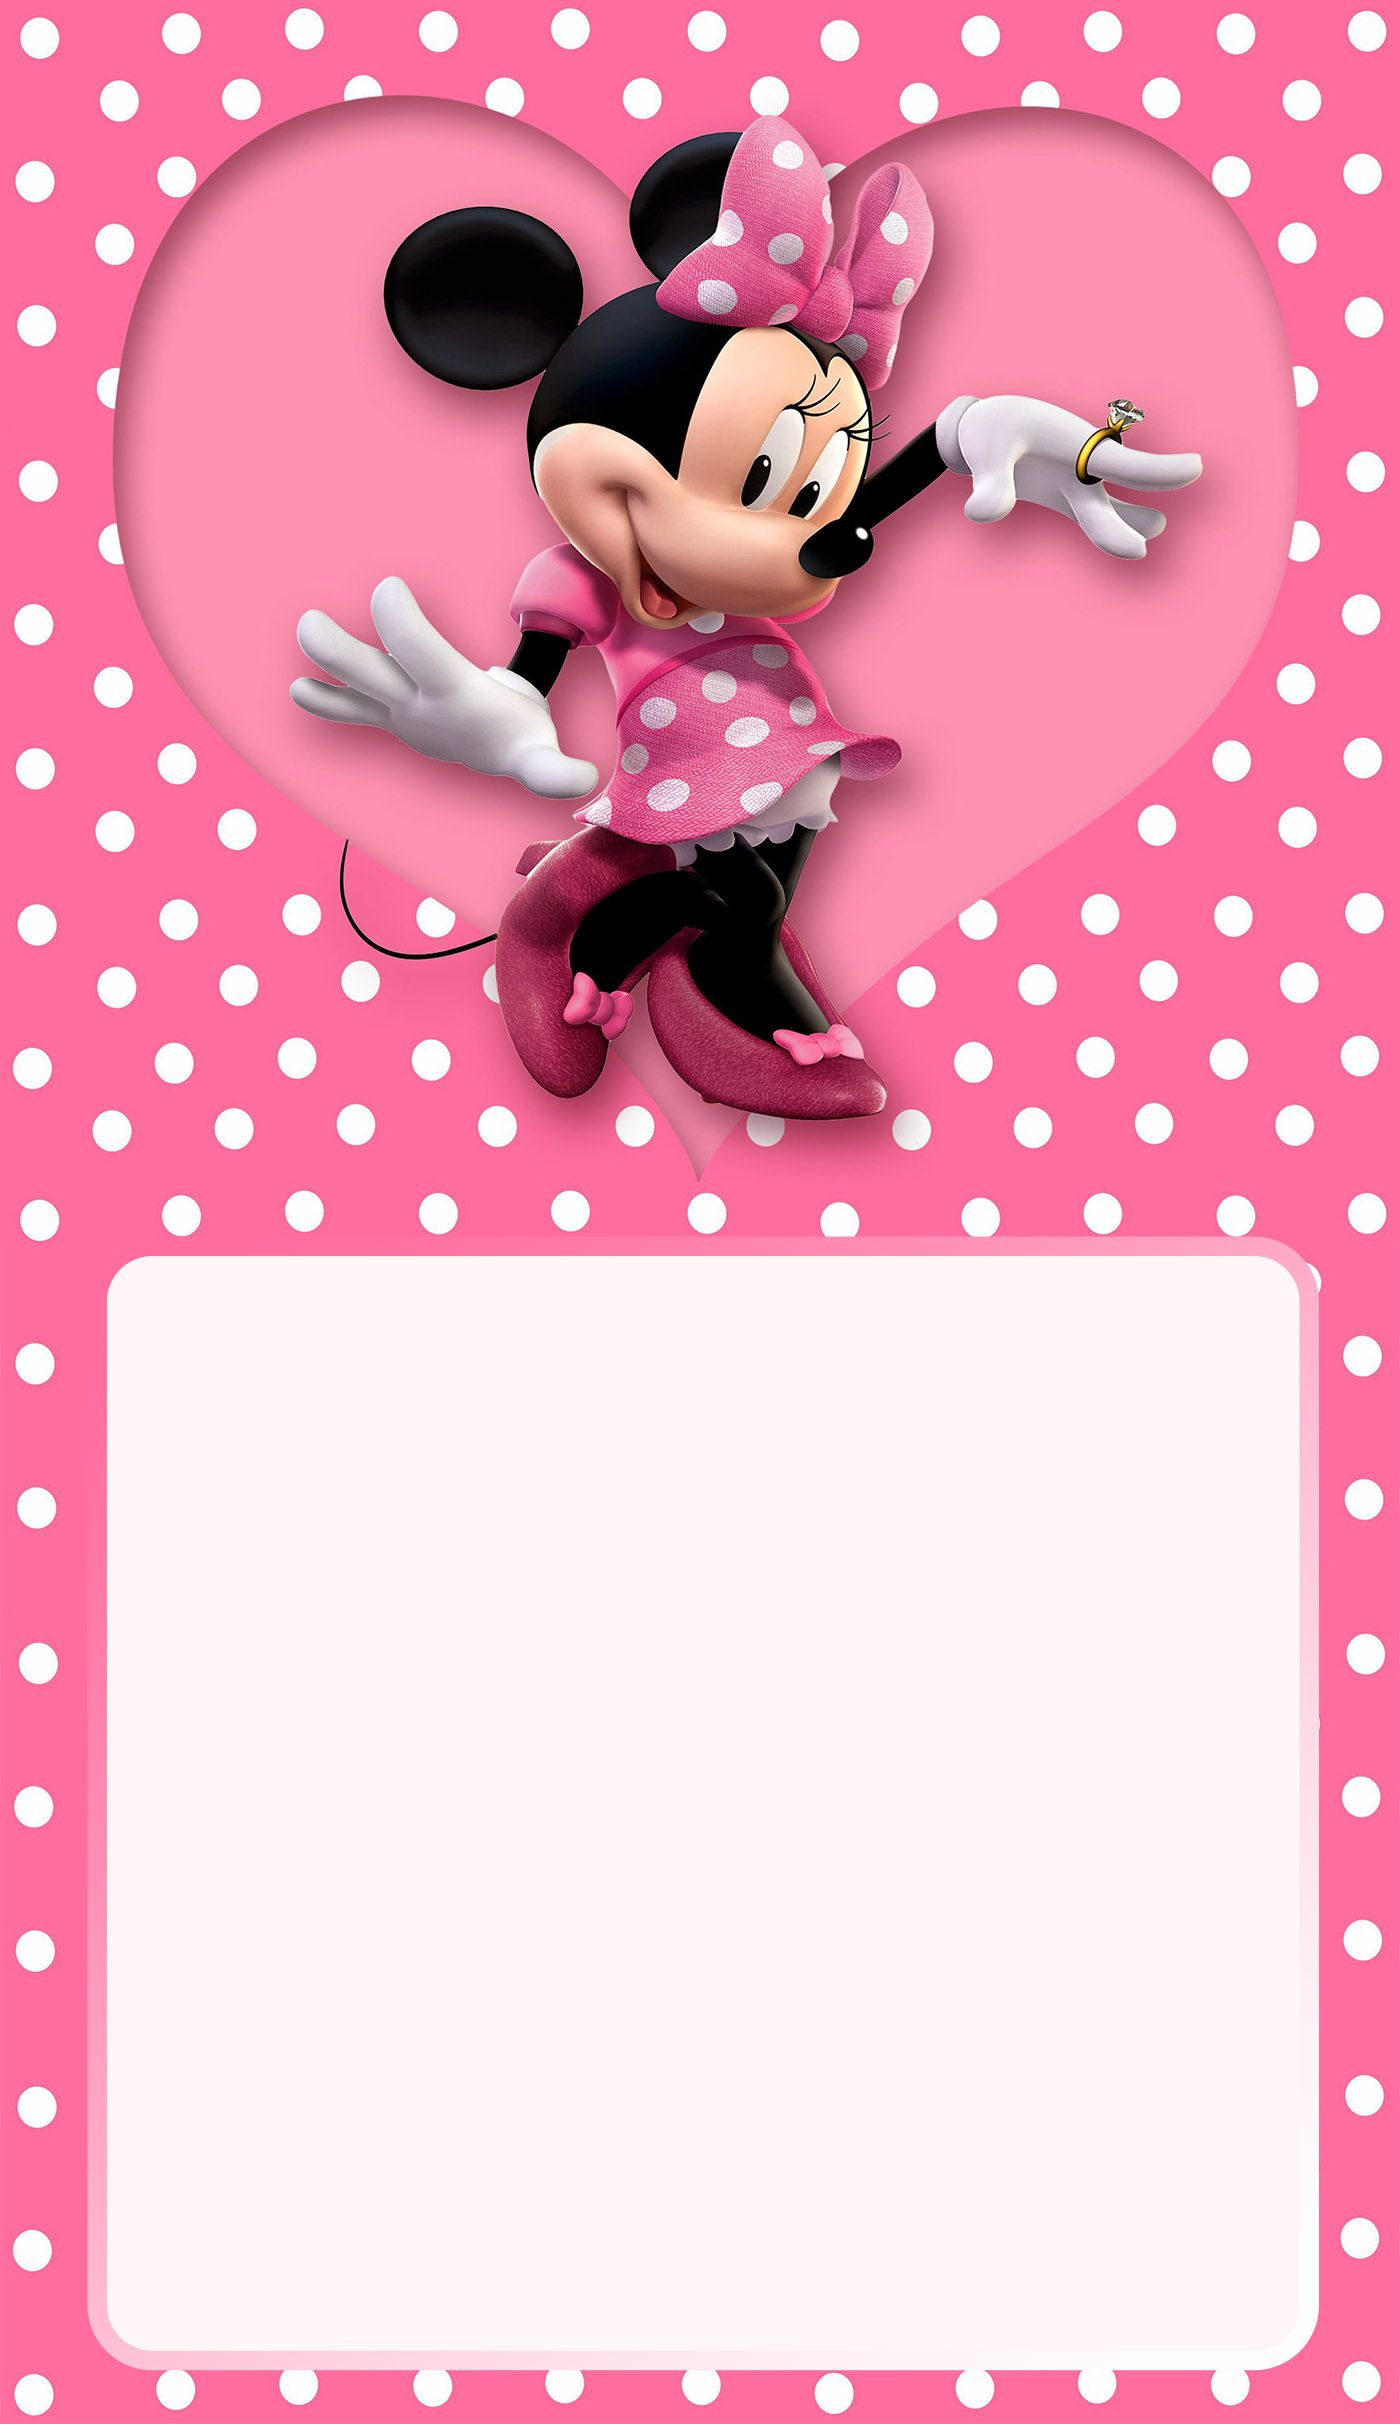 Minnie Mouse Birthday Party Invitation | hobi ürünler | Pinterest ...